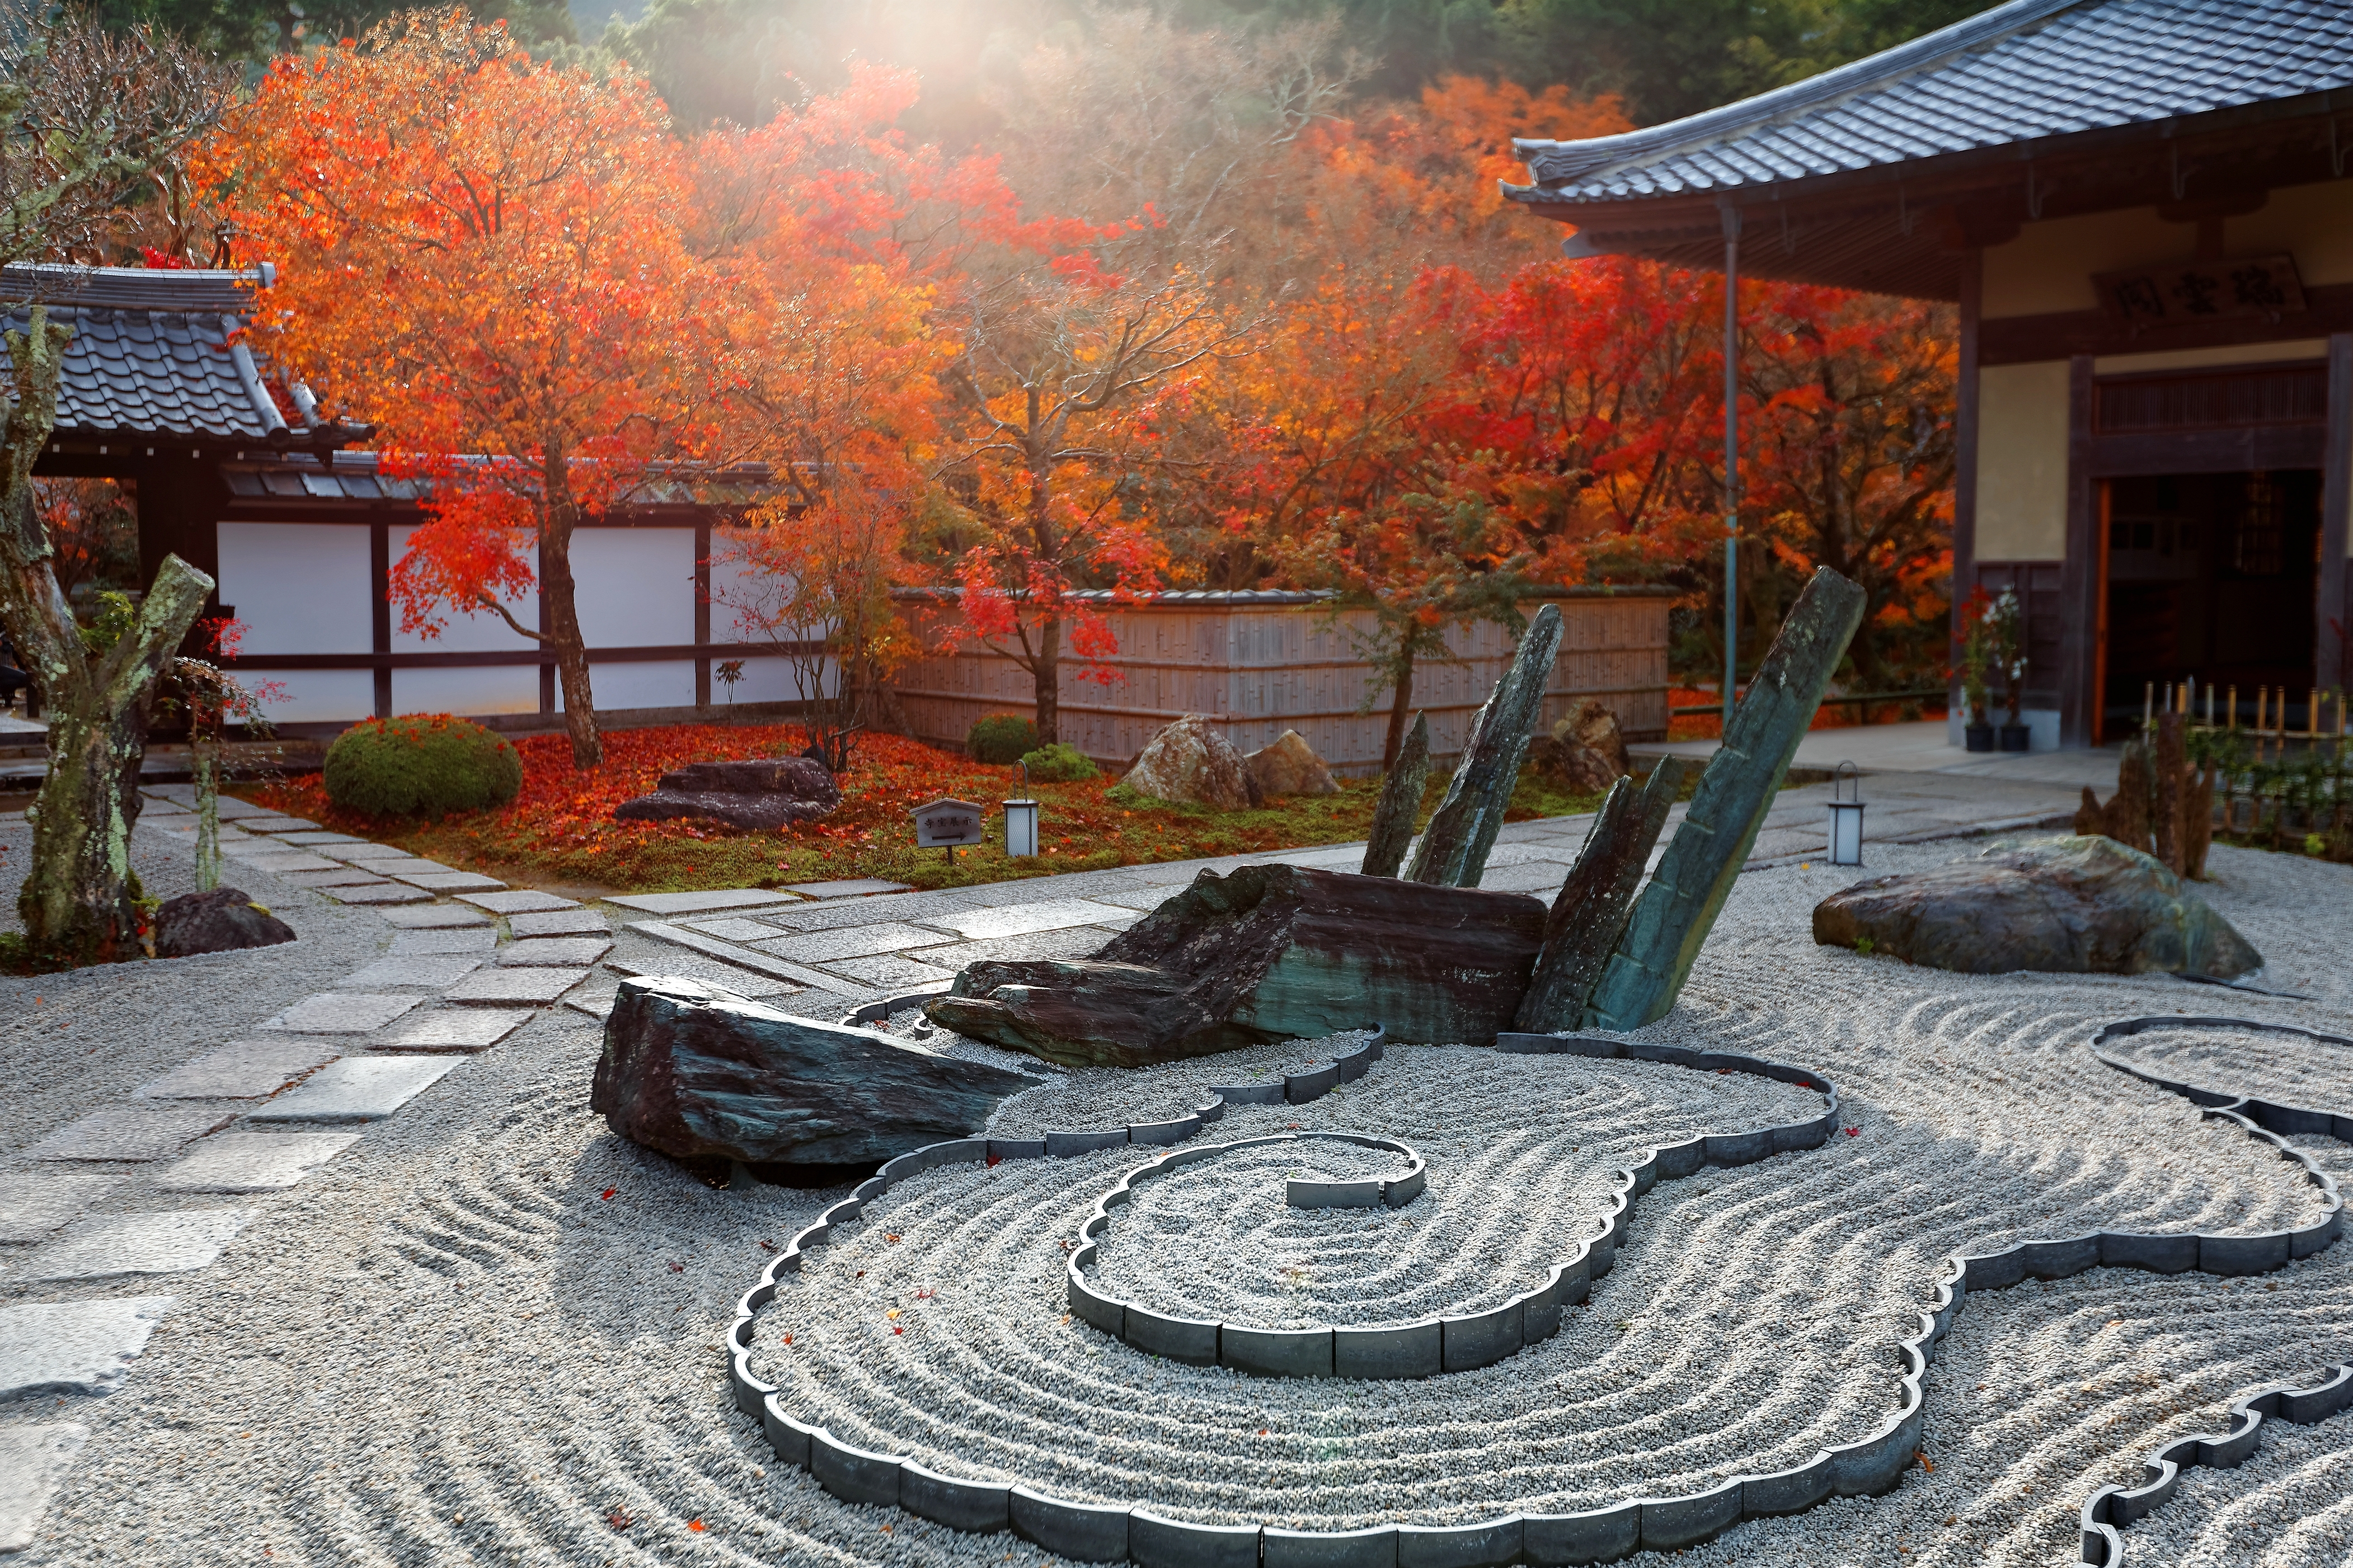 autumn scenery japanese rock garden zen garden dry landscape or karesansui in morning